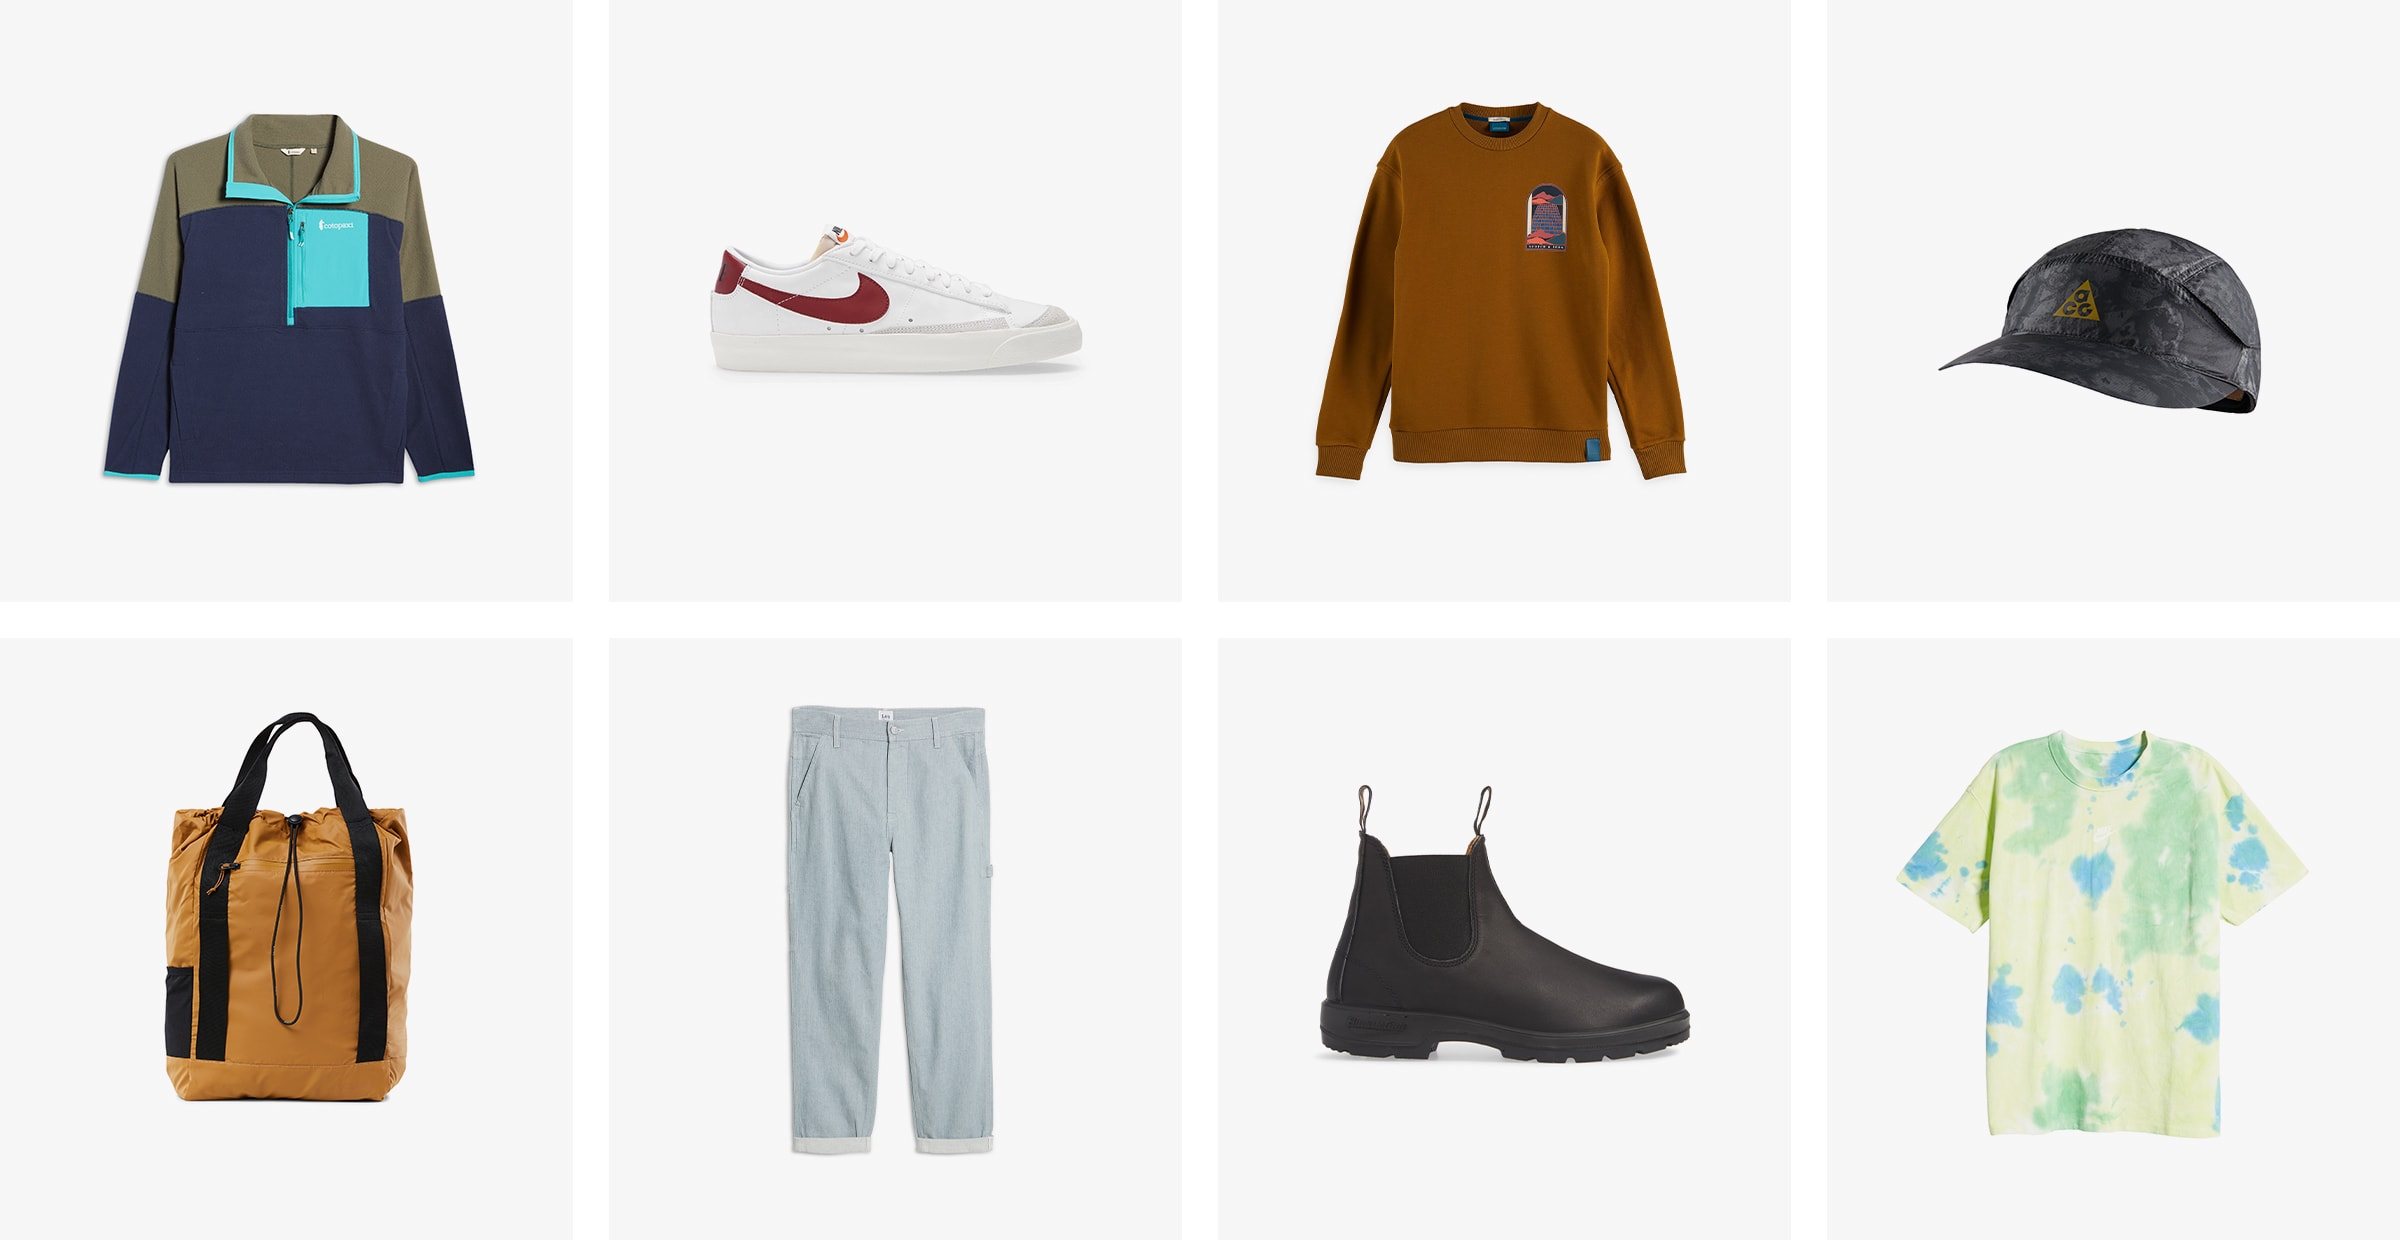 A color-blocked fleece pullover, white sneakers, a brown sweatshirt, a black cap, an orange tote, light-wash jeans, black boots and a tie-dyed T-shirt.